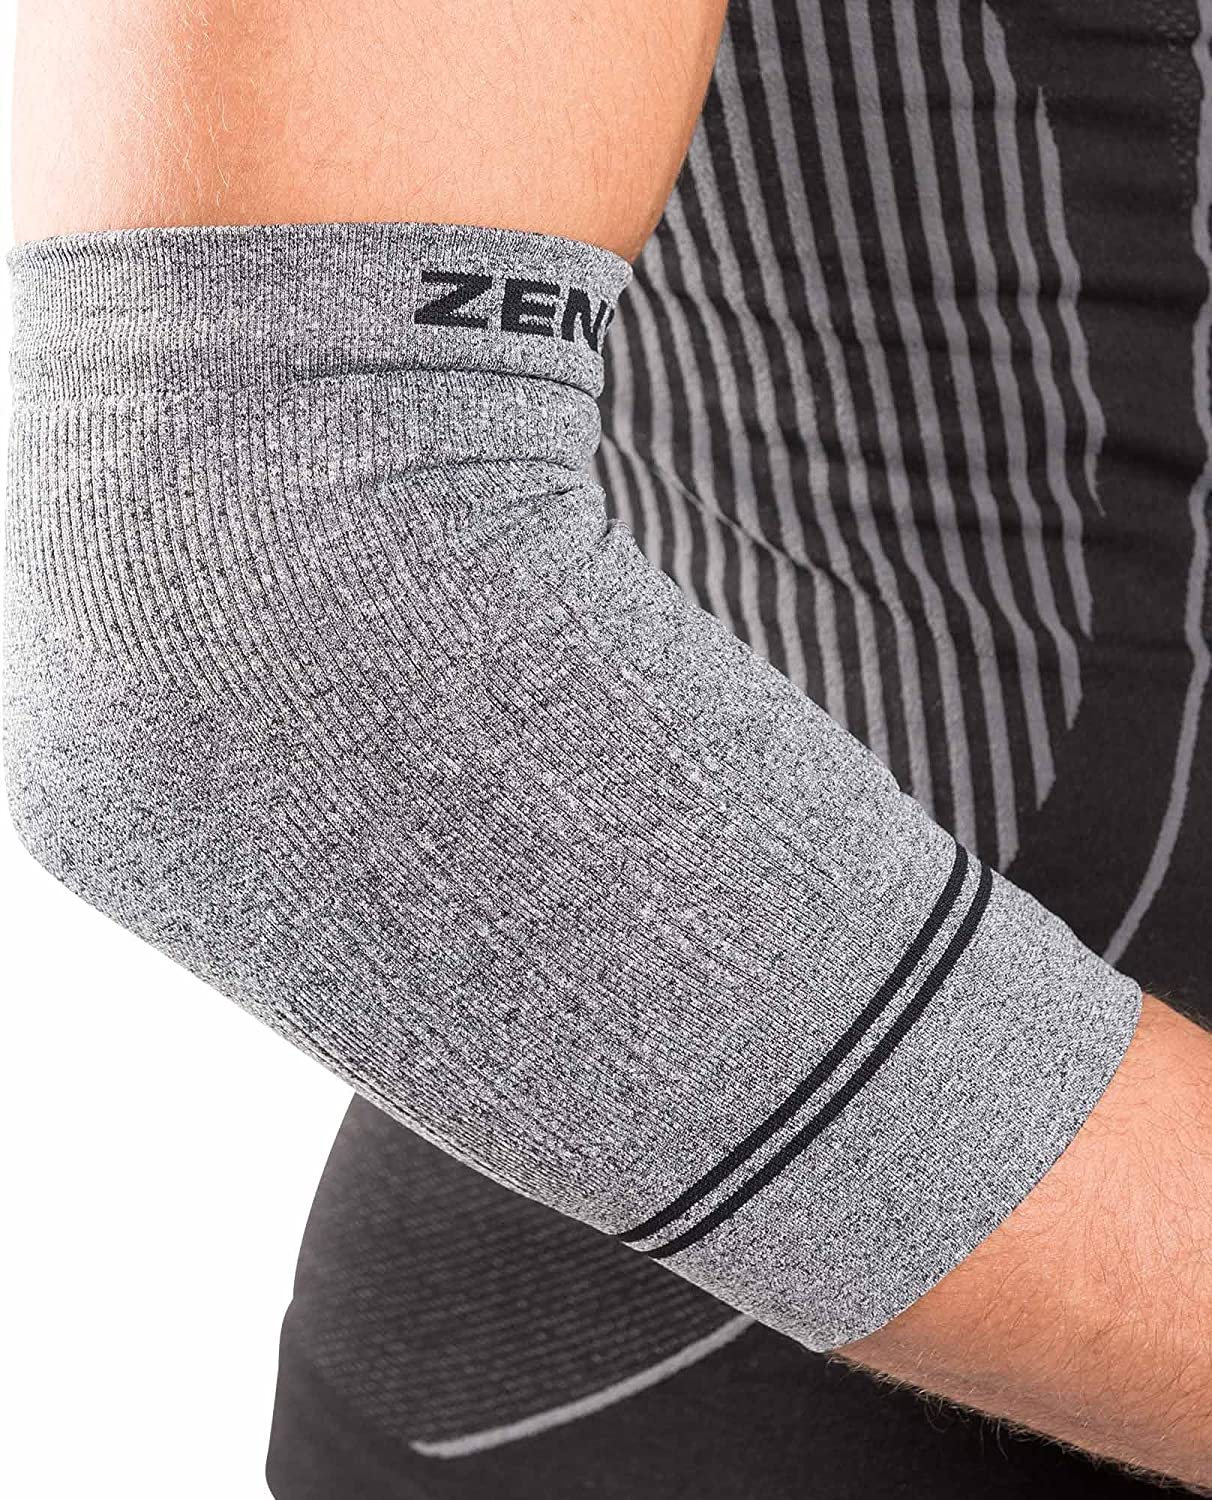 Zensah Compression Tennis Fashion Elbow Free shipping anywhere in the nation Ten Sleeve Tendonitis for